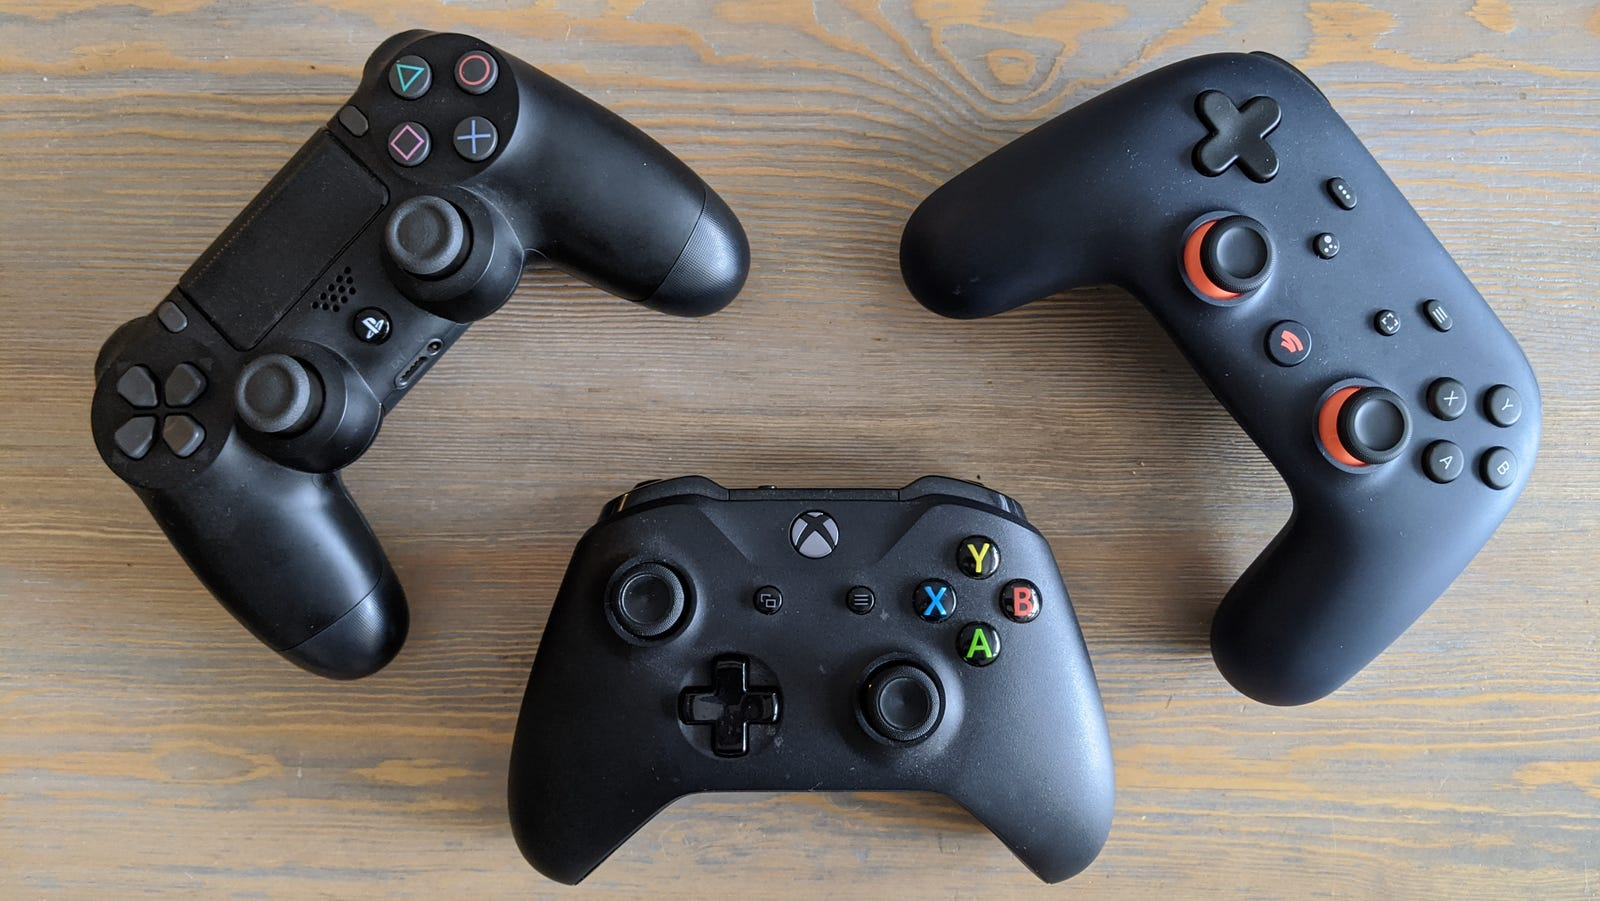 From left to right: PlayStation 4, Xbox One, and Google Stadia controllers.